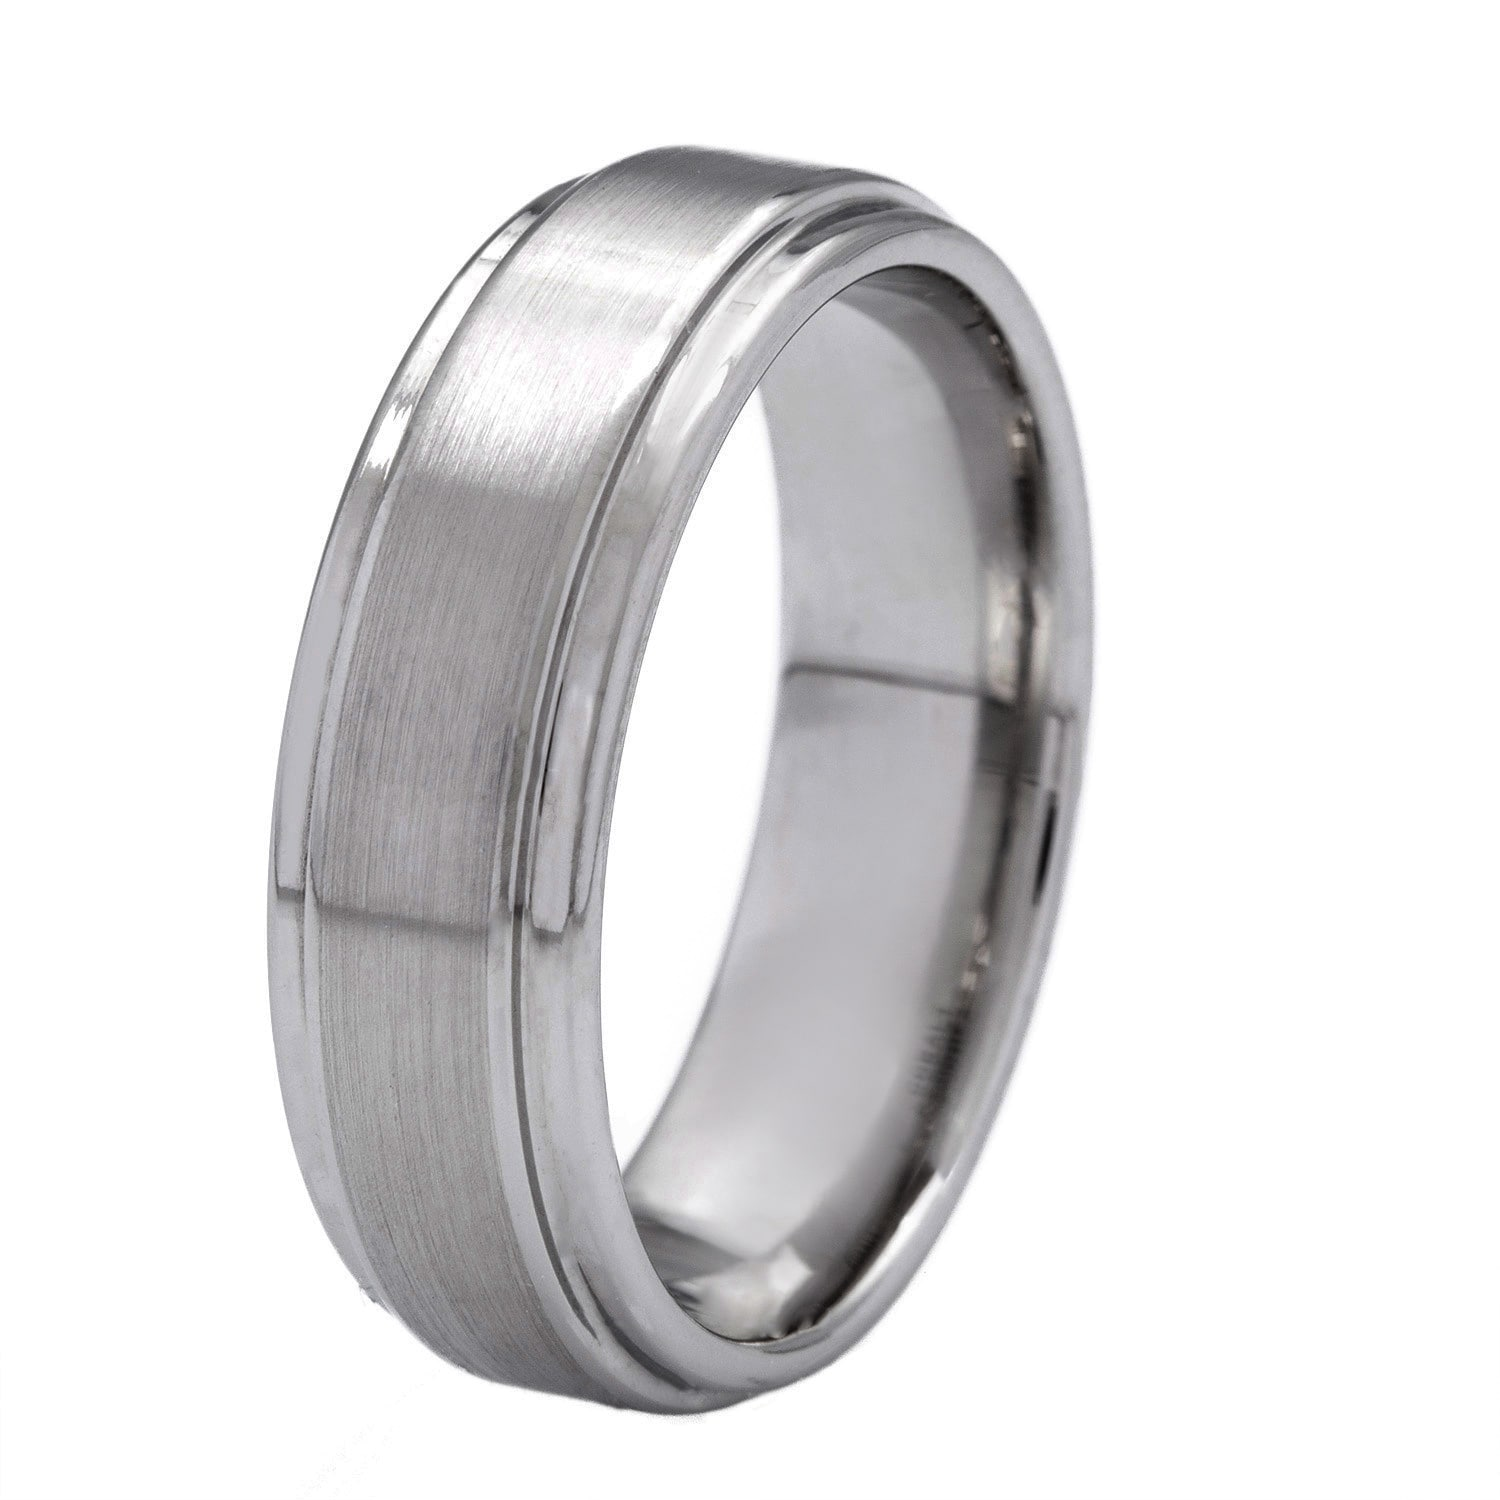 chrome cobalt ring mosaic rings products design jewelry wedding